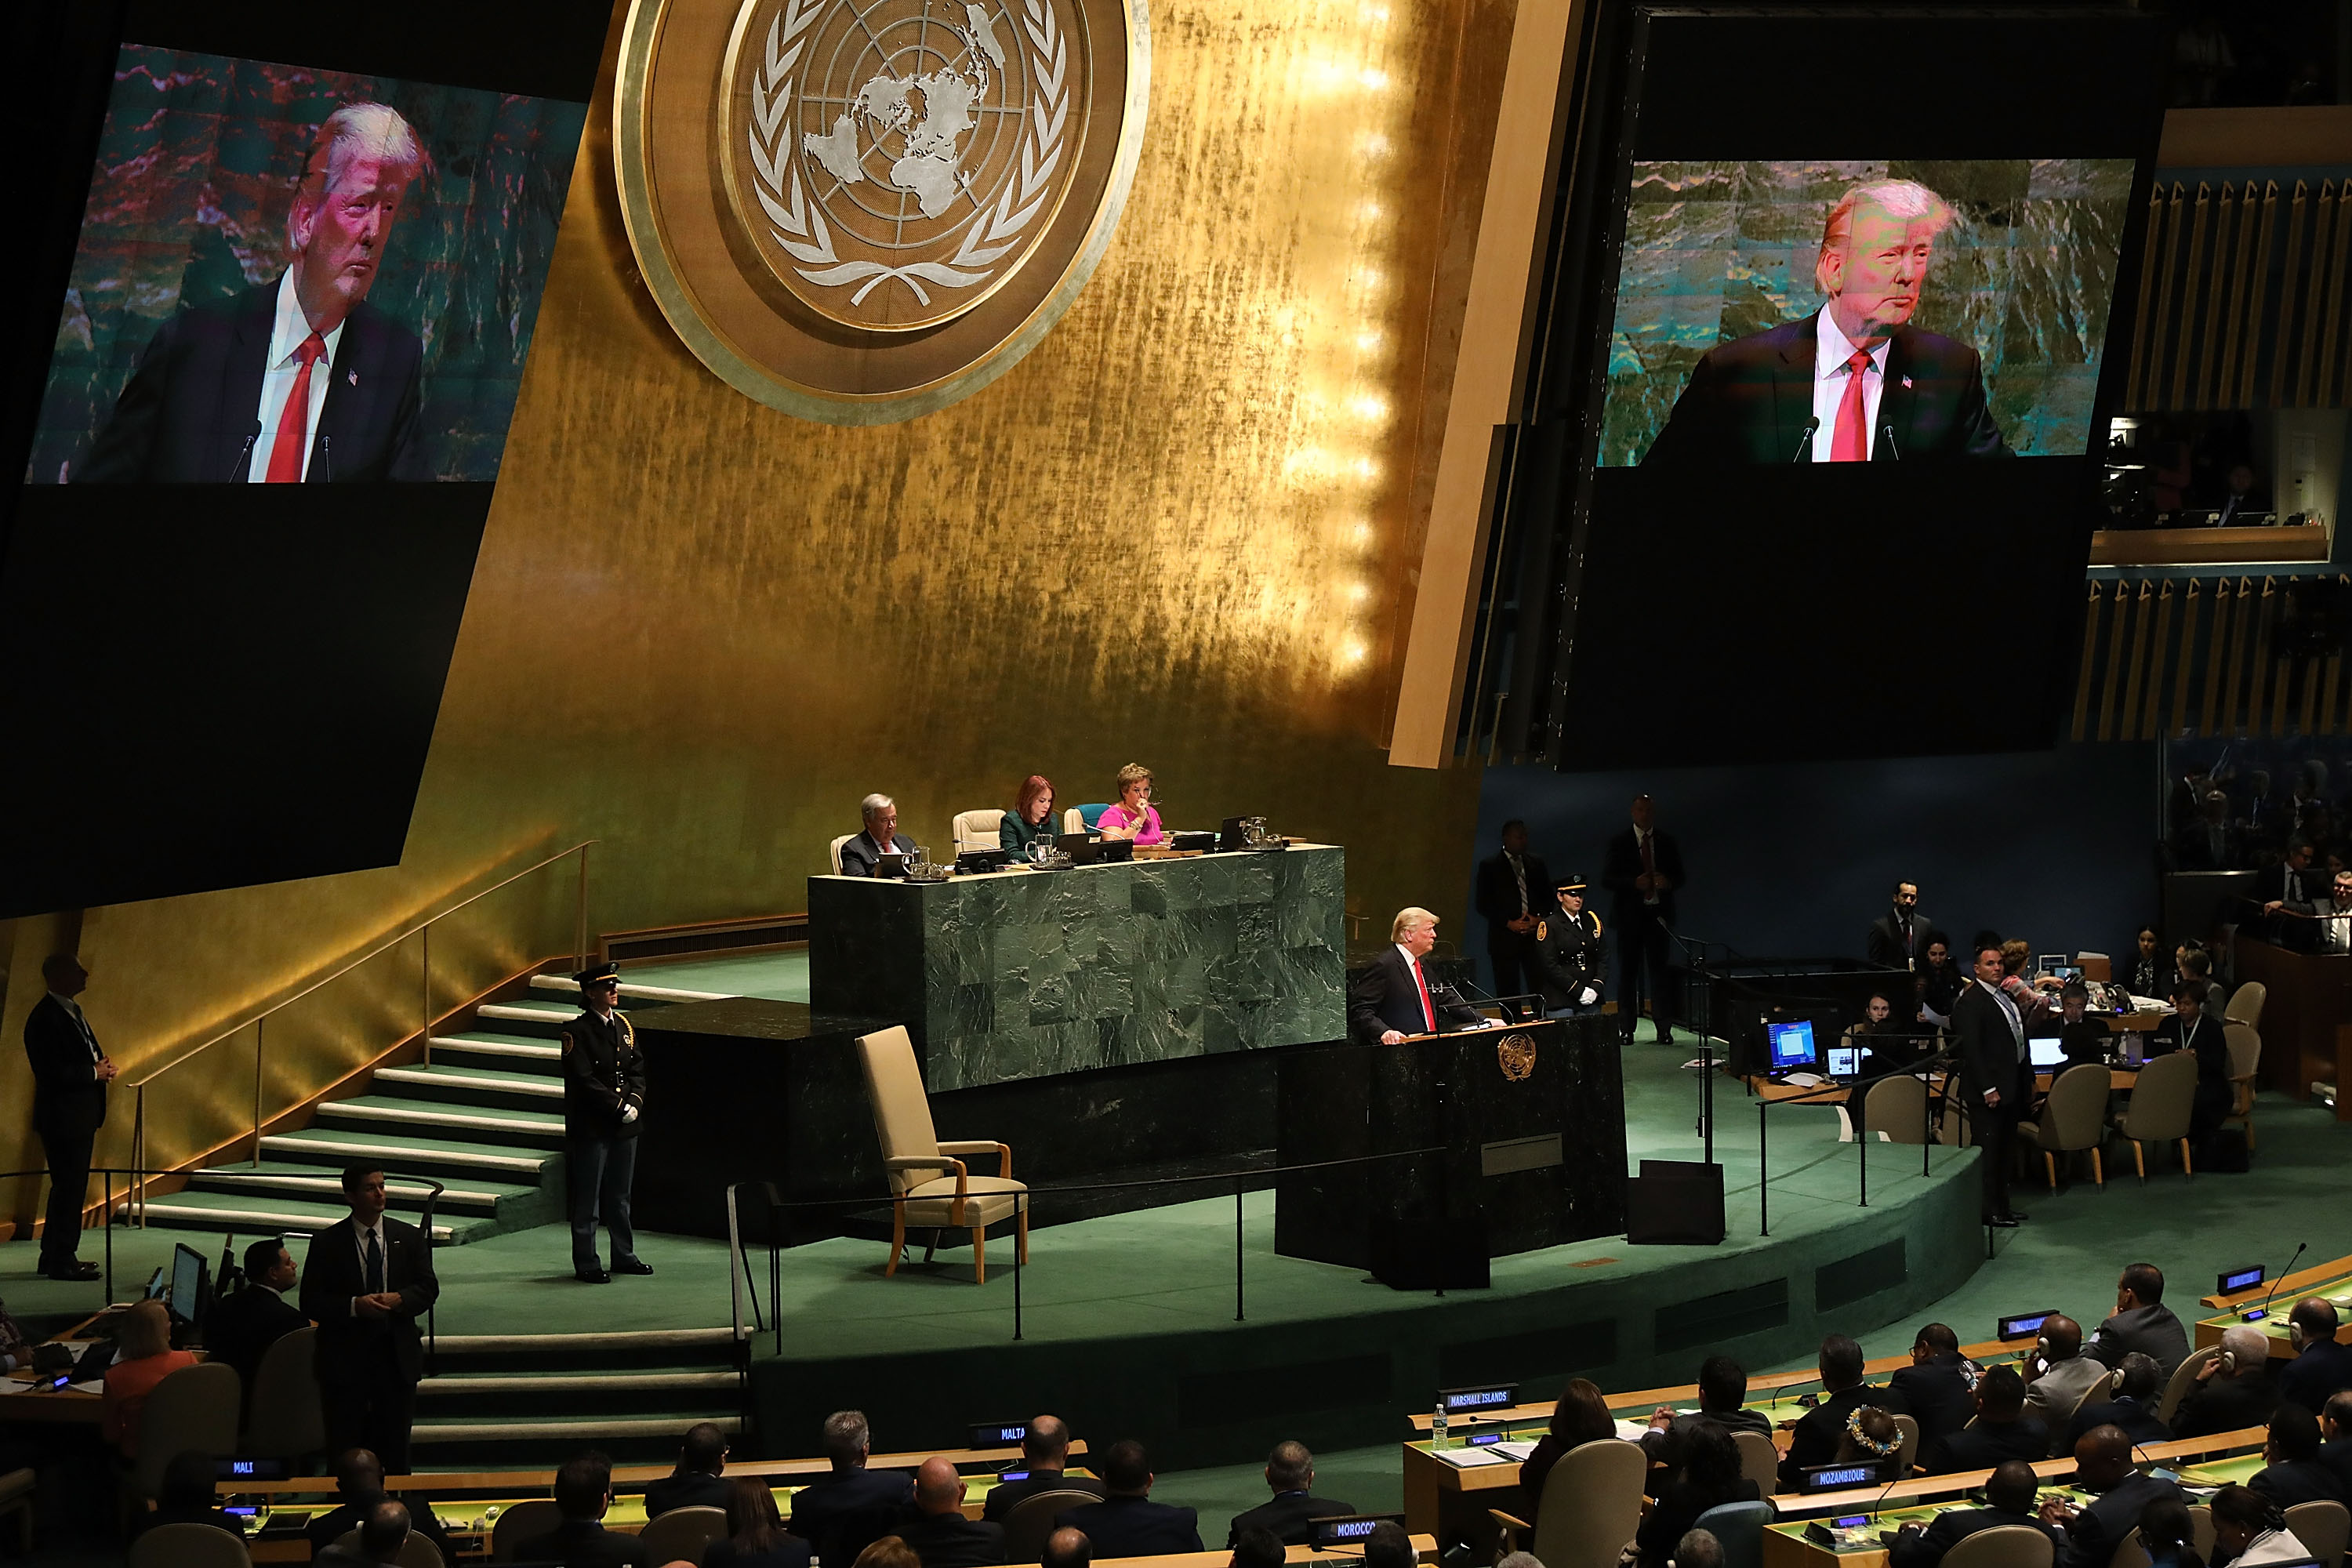 Trump used to steal the show at the UN. This year, it may be different.